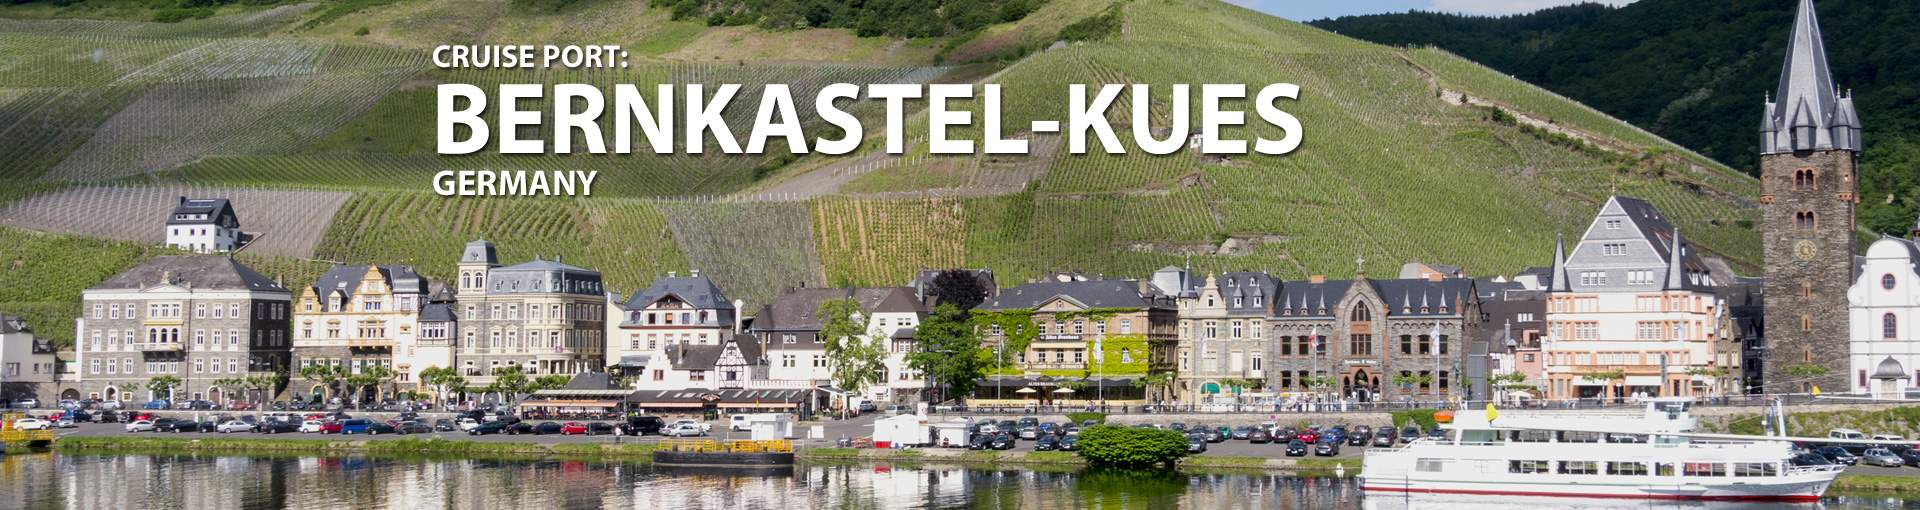 Cruises to Bernkastel-Kues, Germany